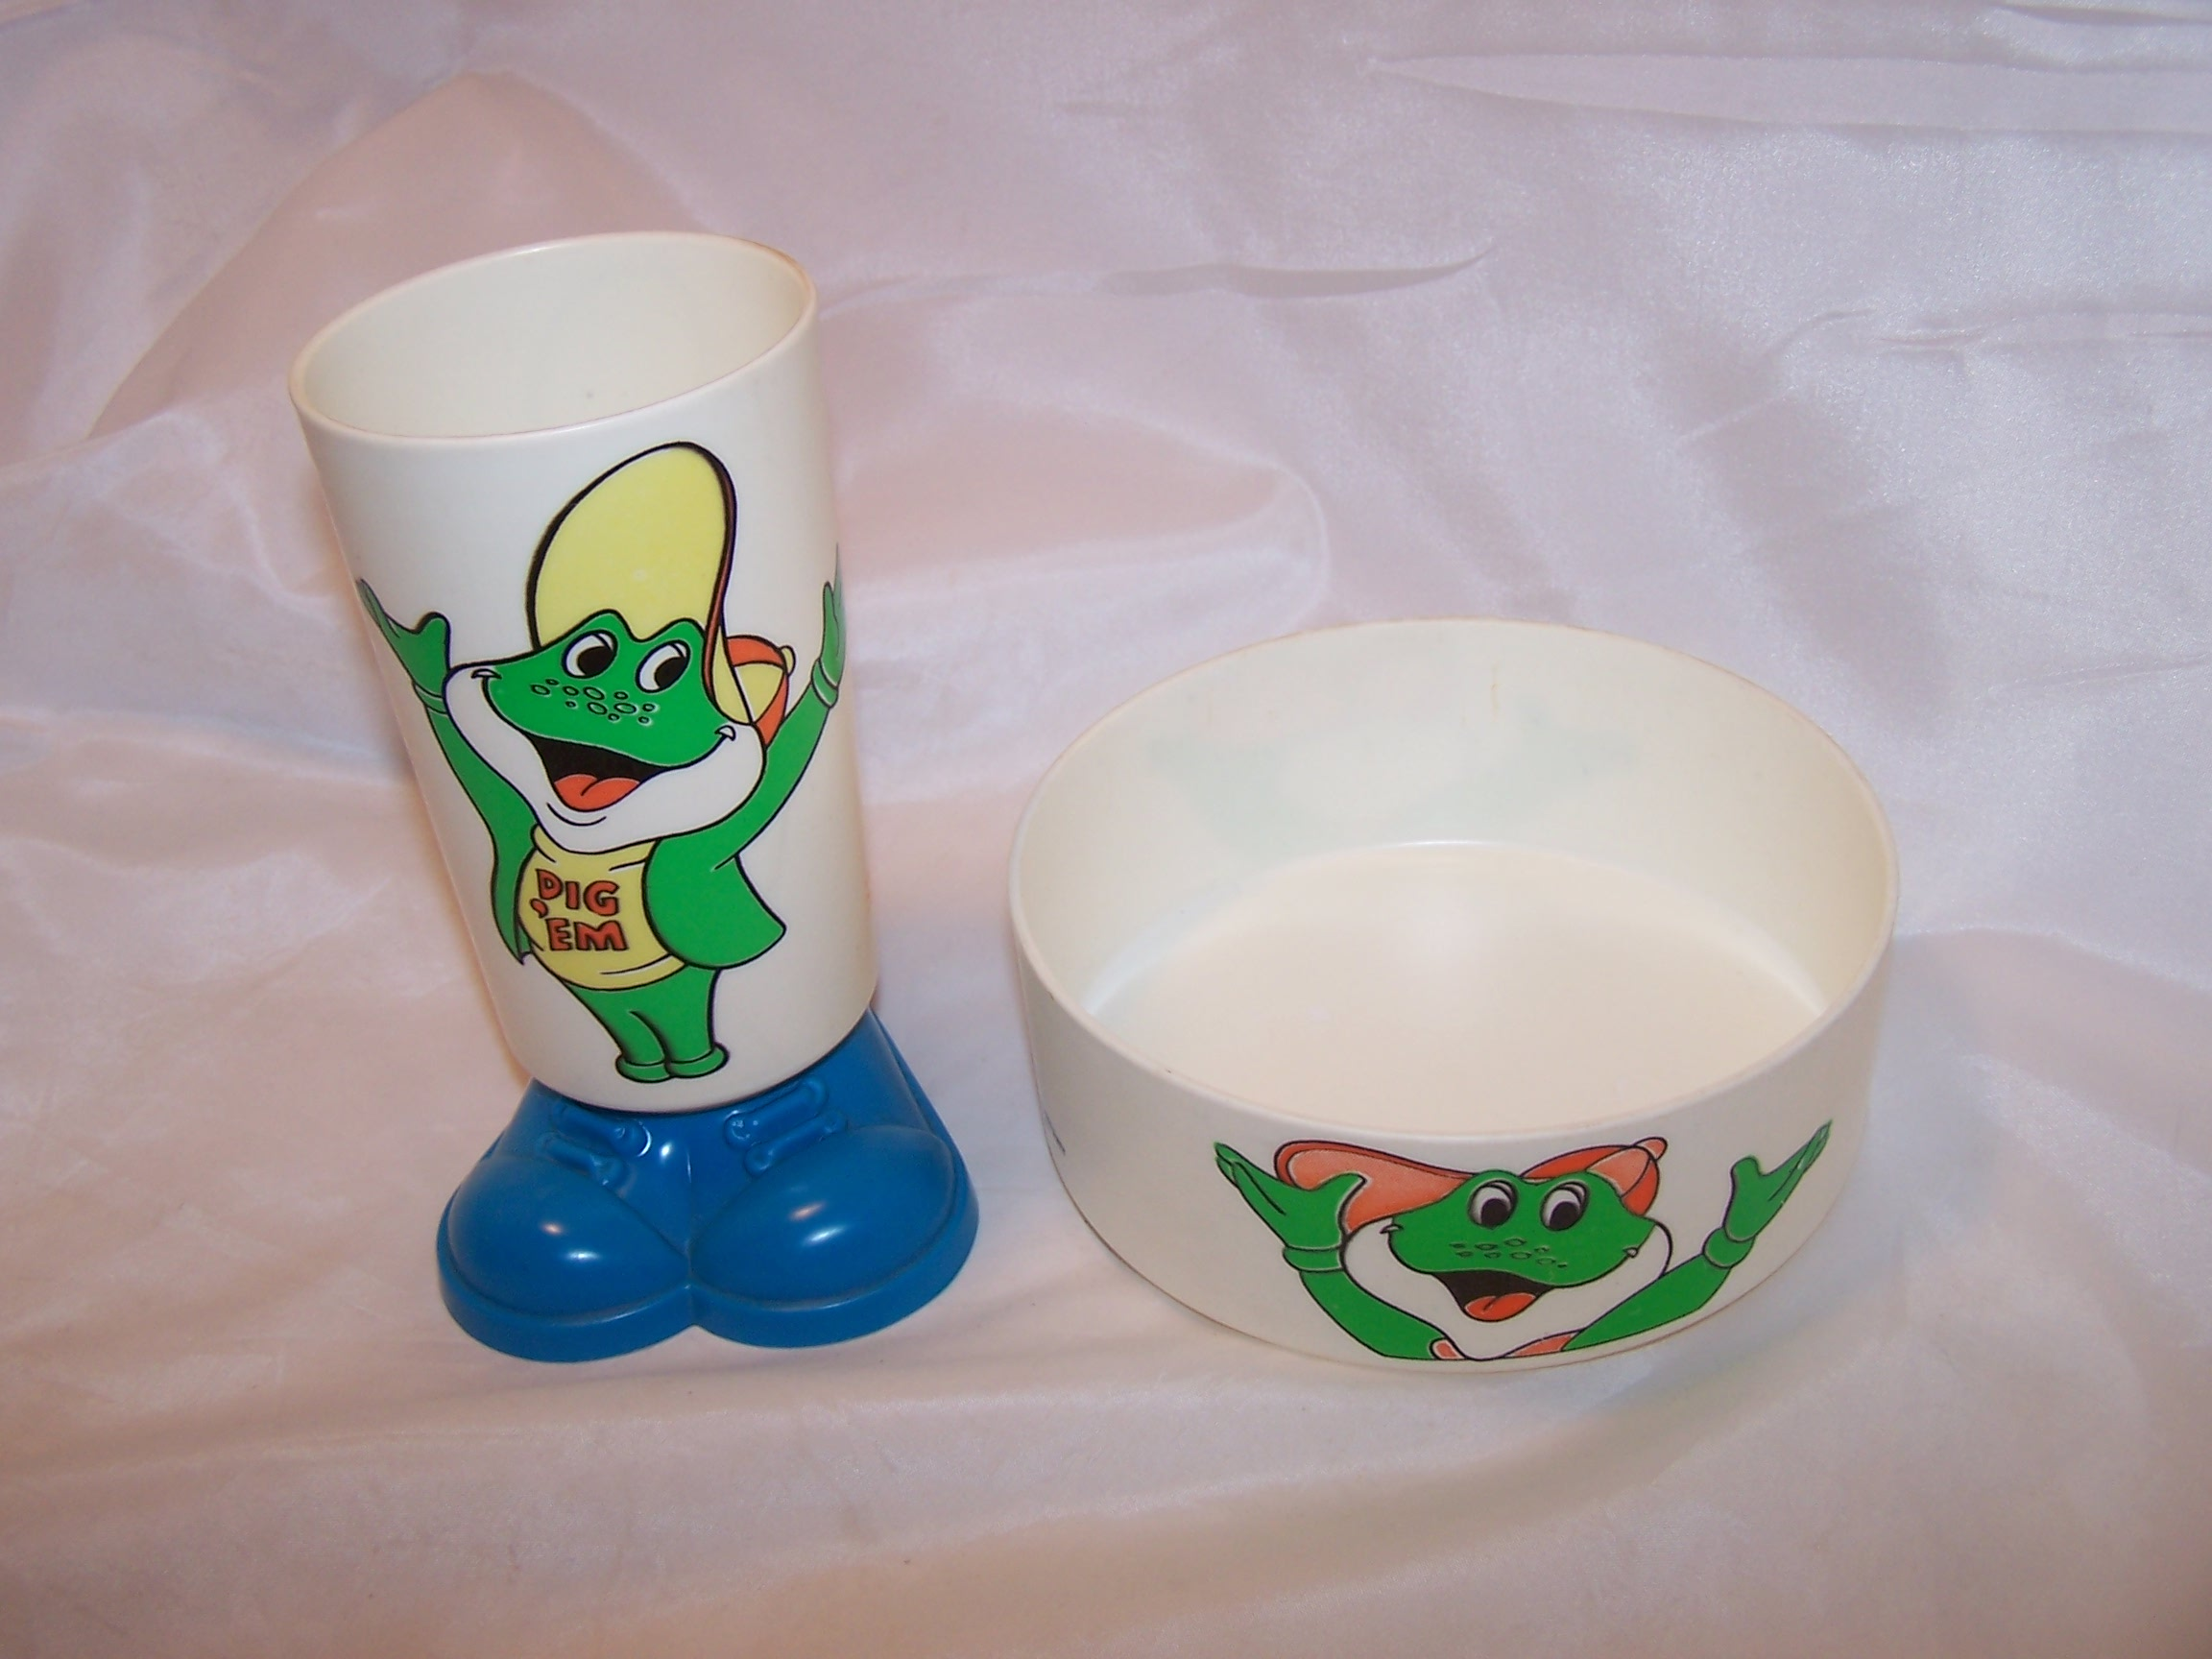 Dig 'Em Bowl and Cup